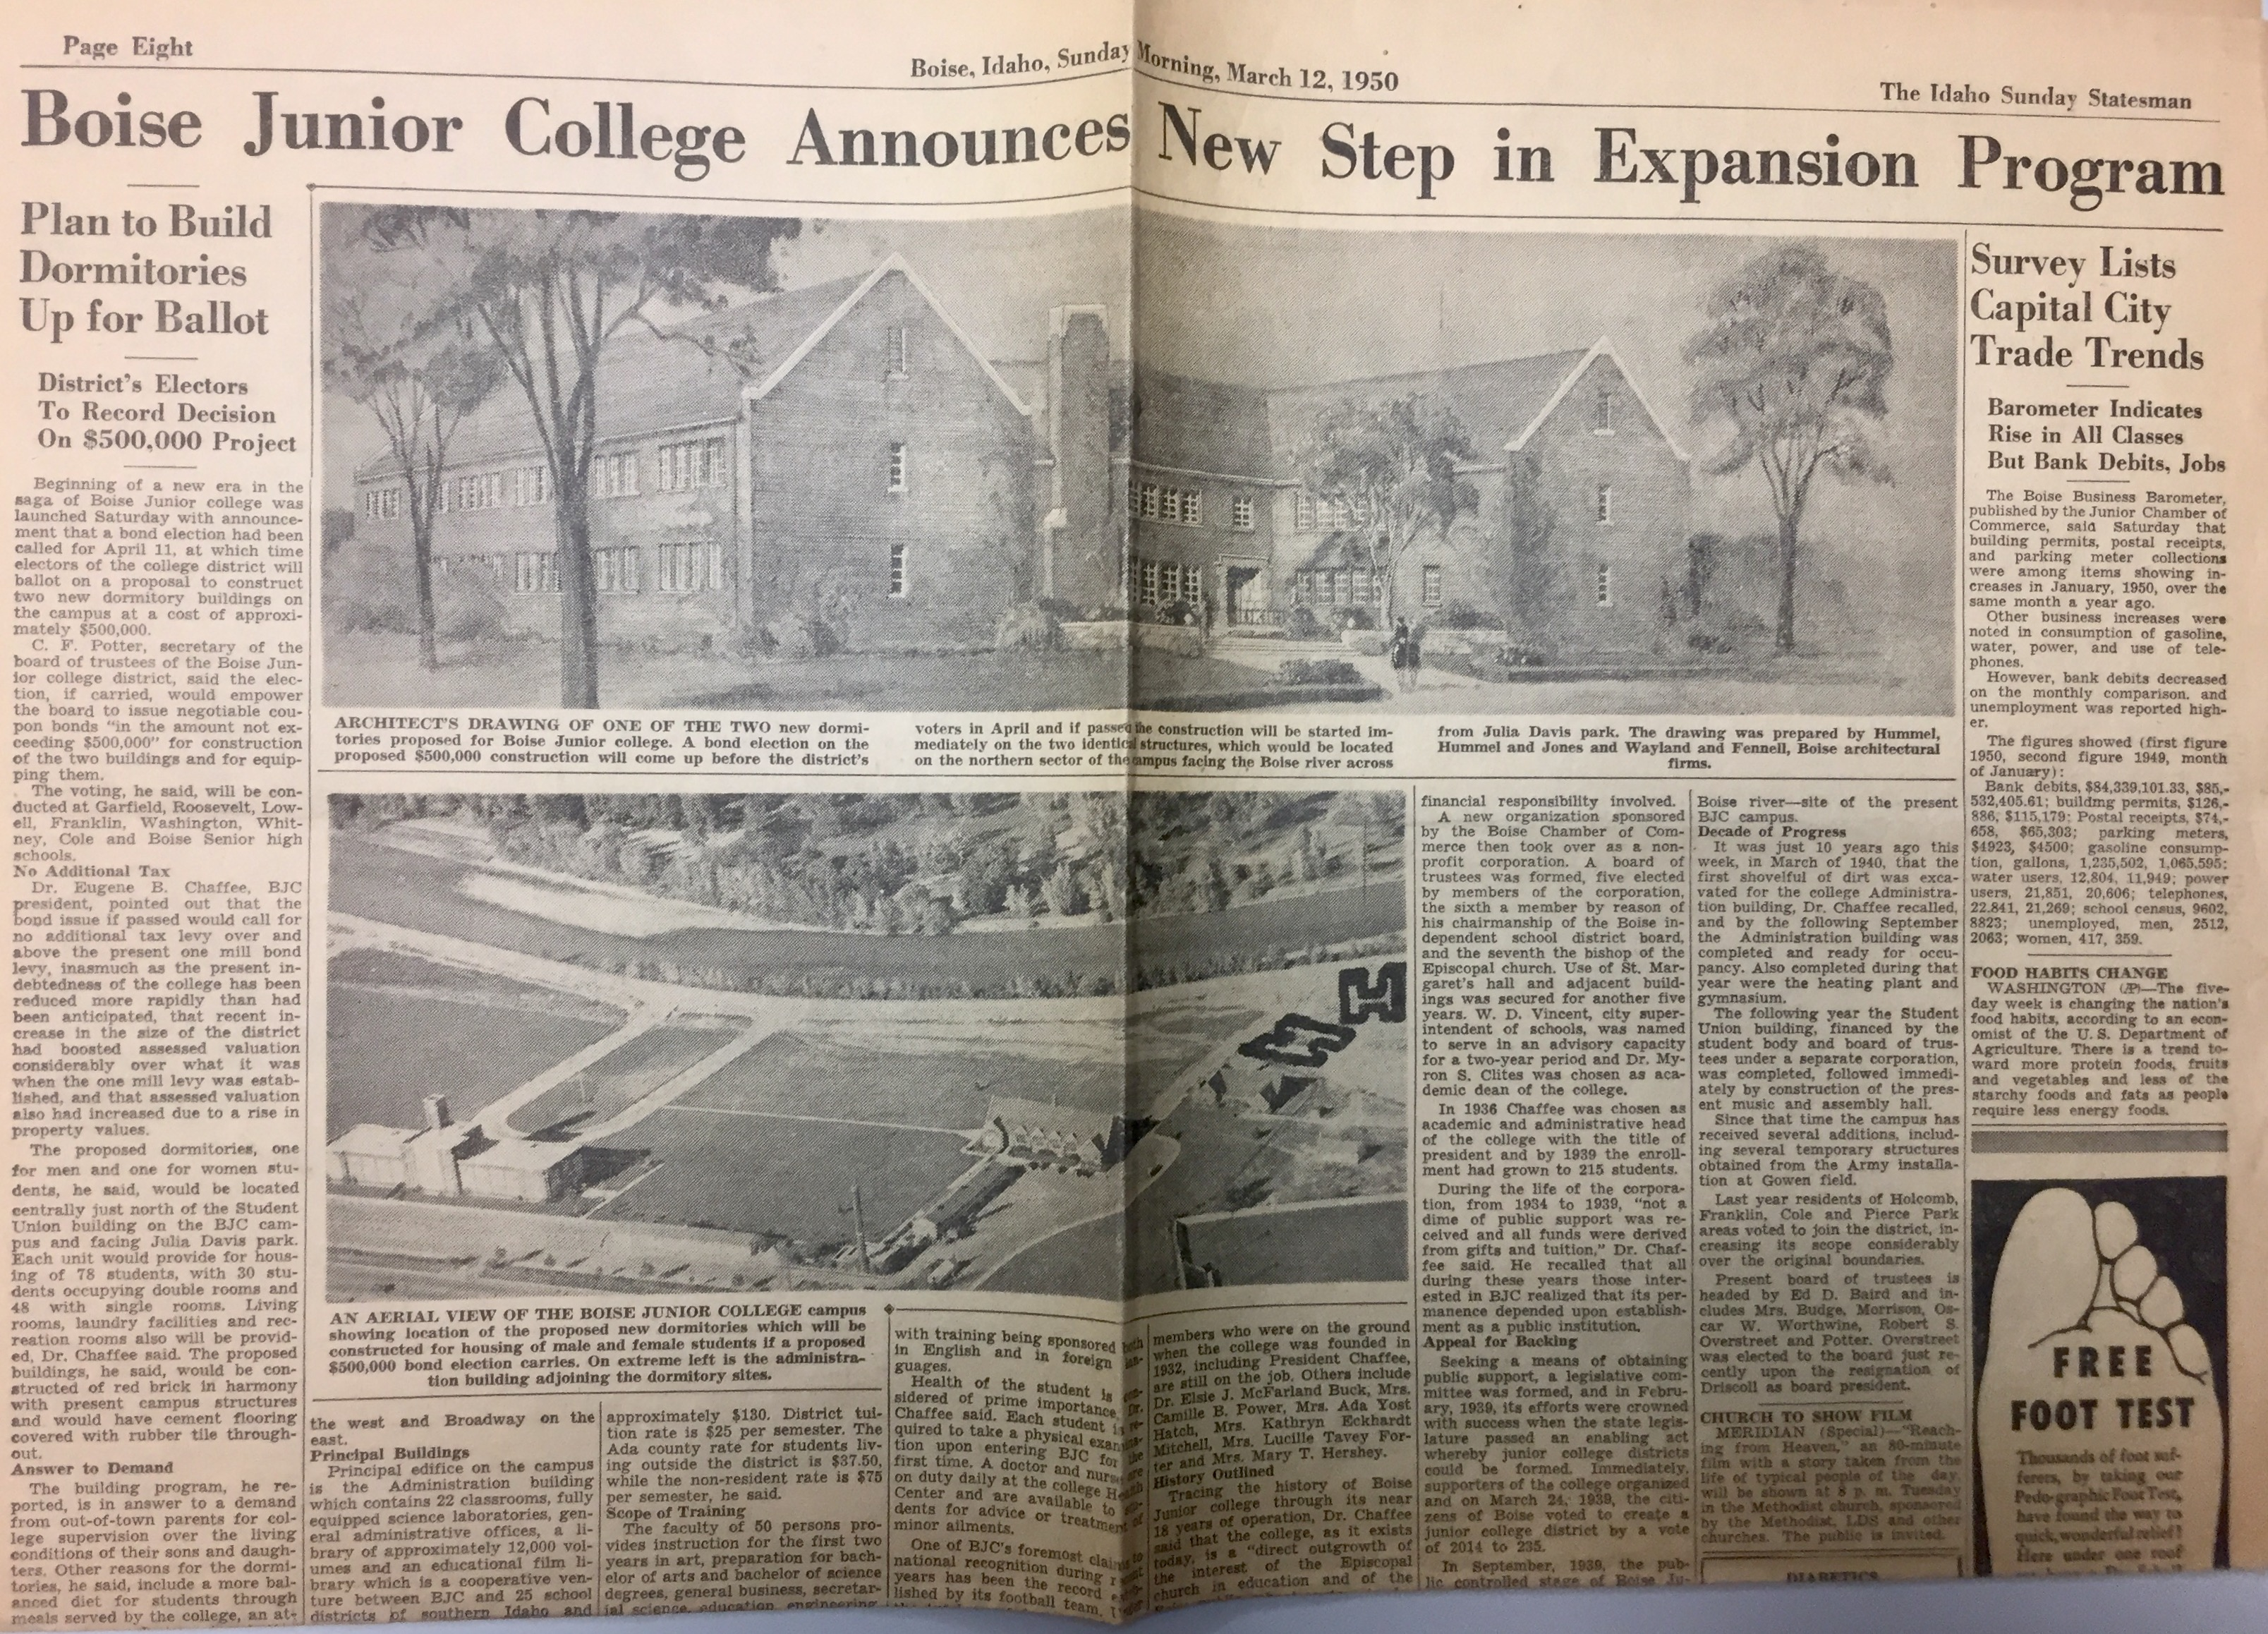 The Idaho Sunday Statesman Article documenting Boise State College's Plan to Expand (March 12, 1950)